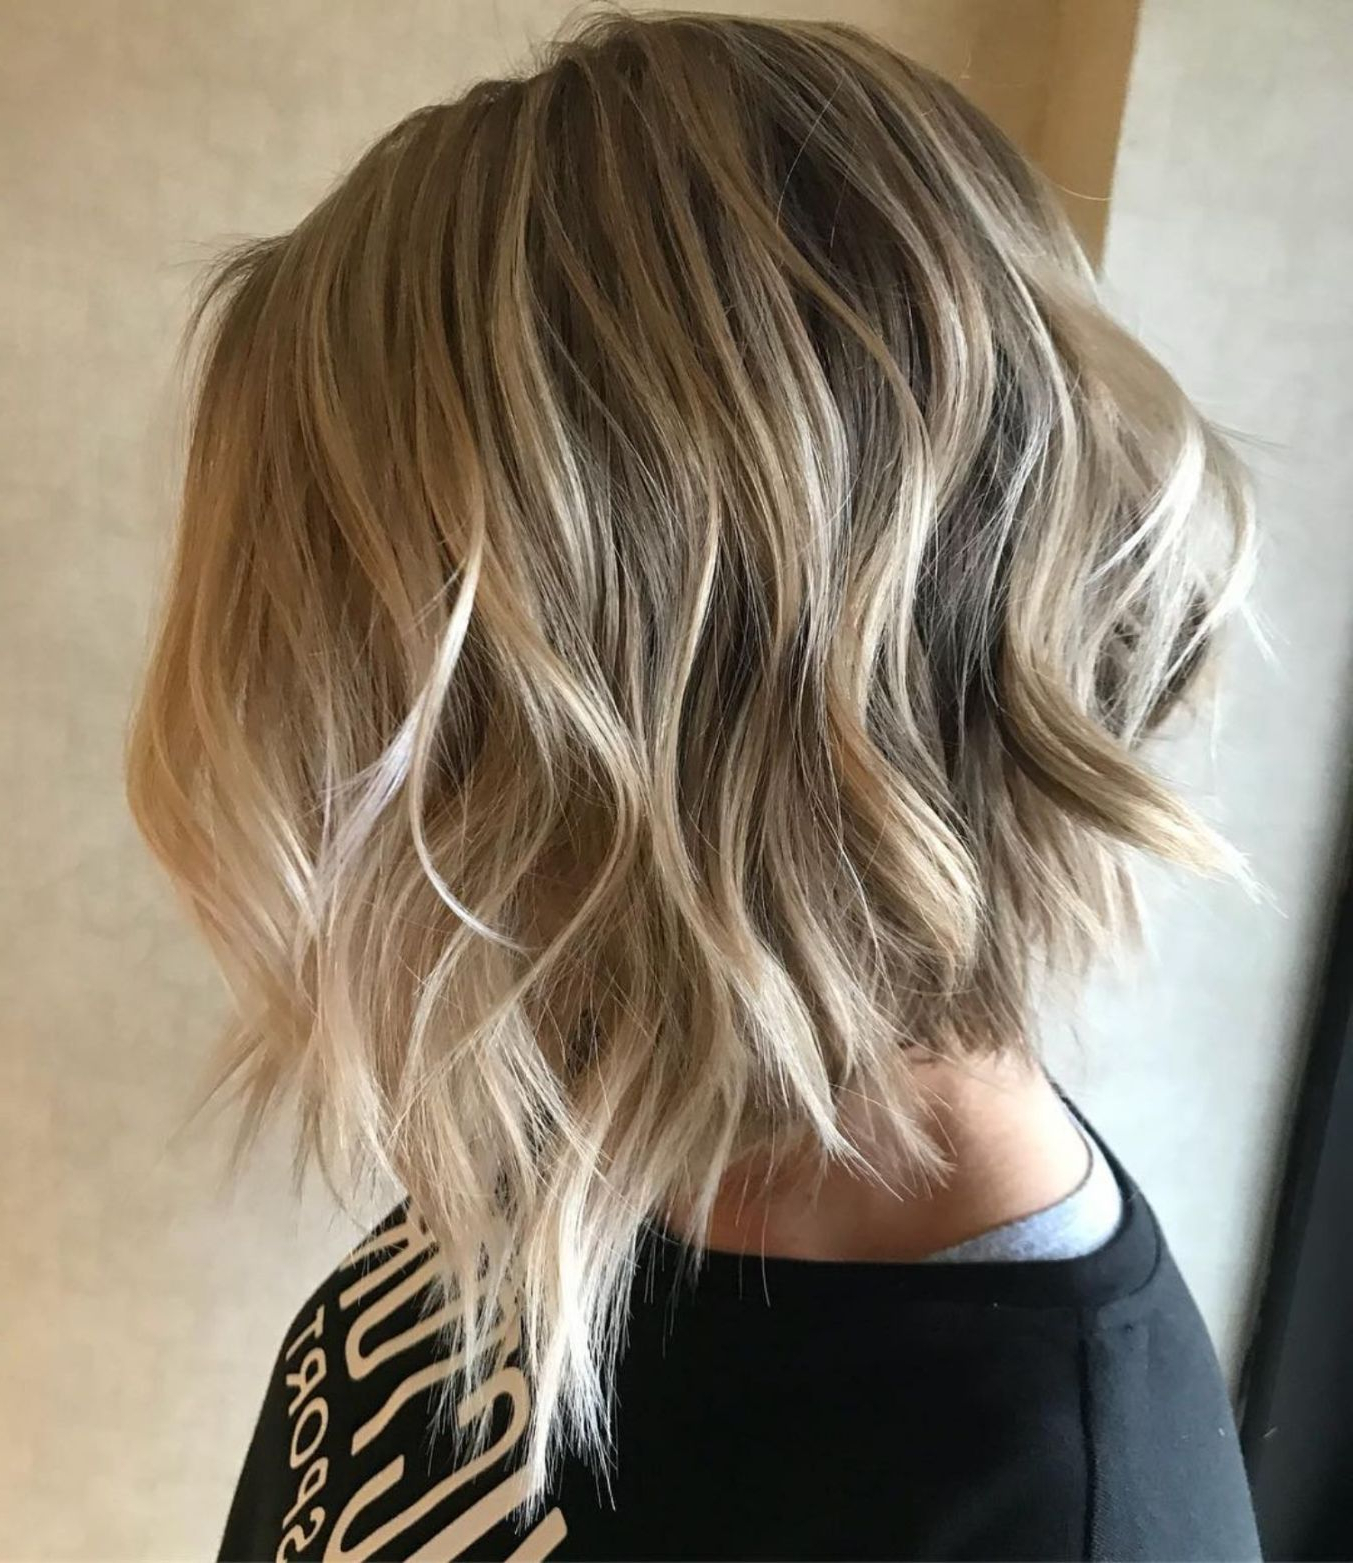 Choppy Bob Hairstyles (View 8 of 20)